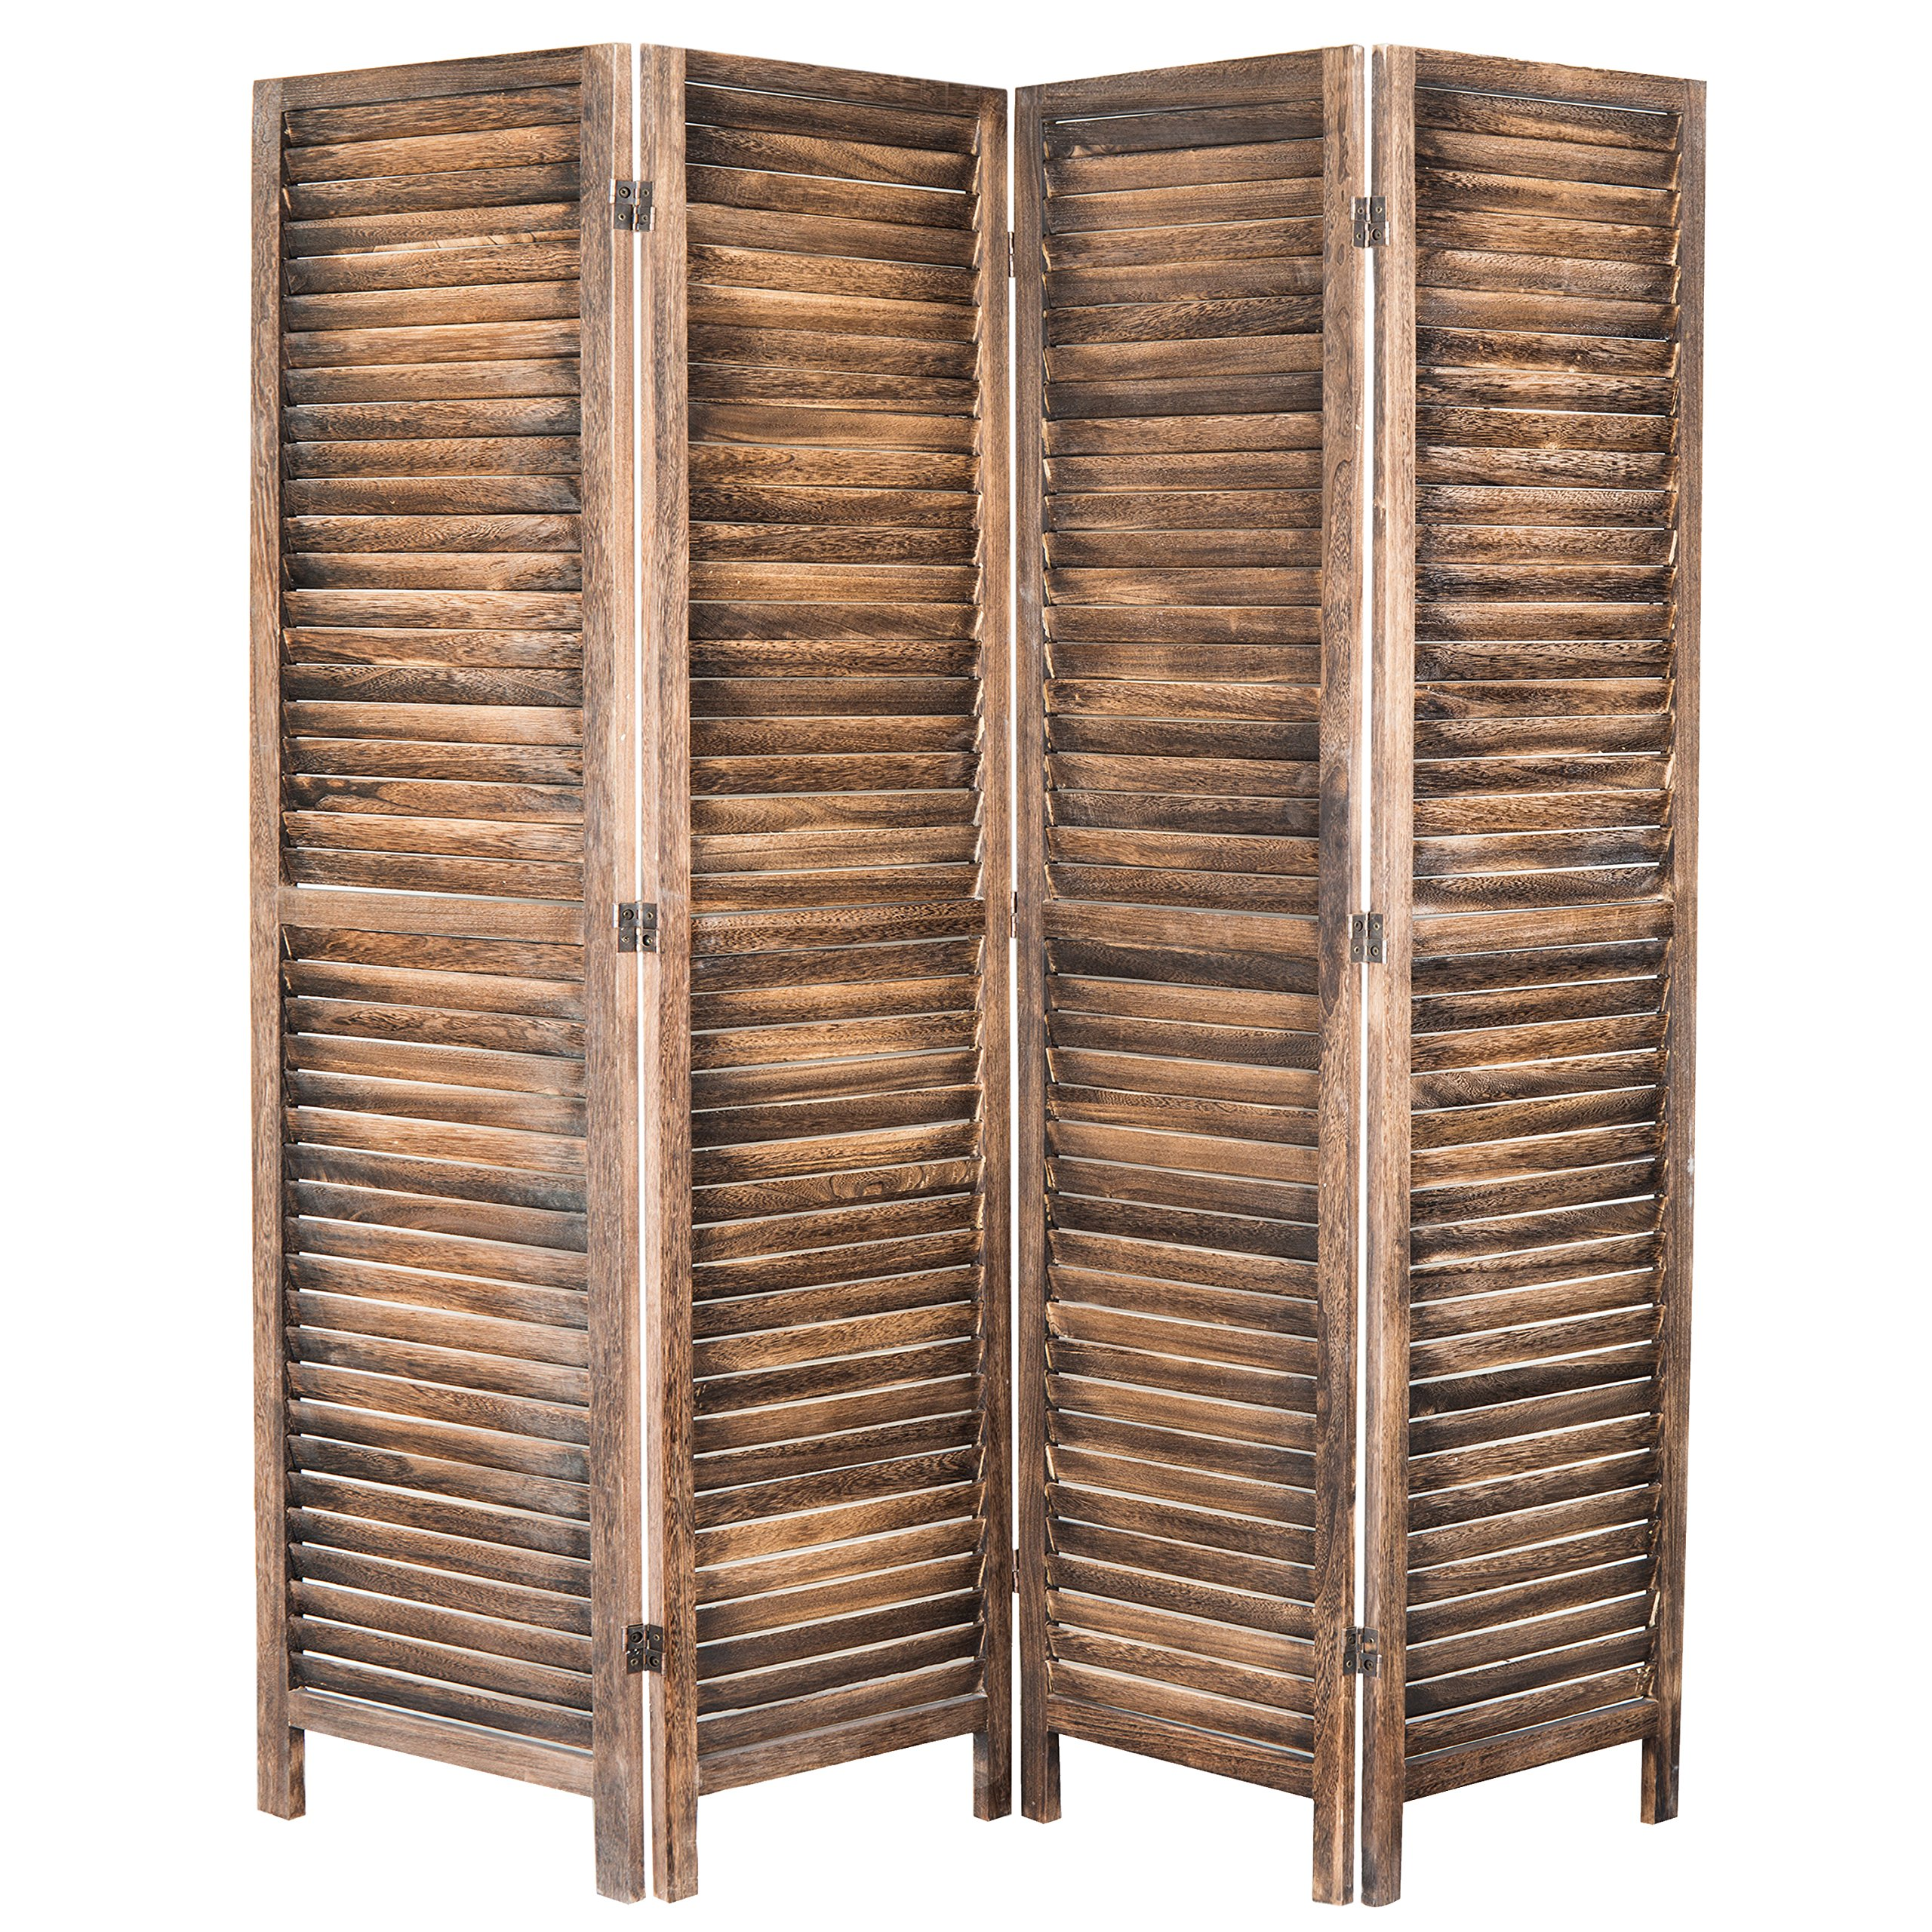 MyGift 4-Panel Rustic Brown Wood Louvered Room Divider with Dual-Action Hinges by MyGift